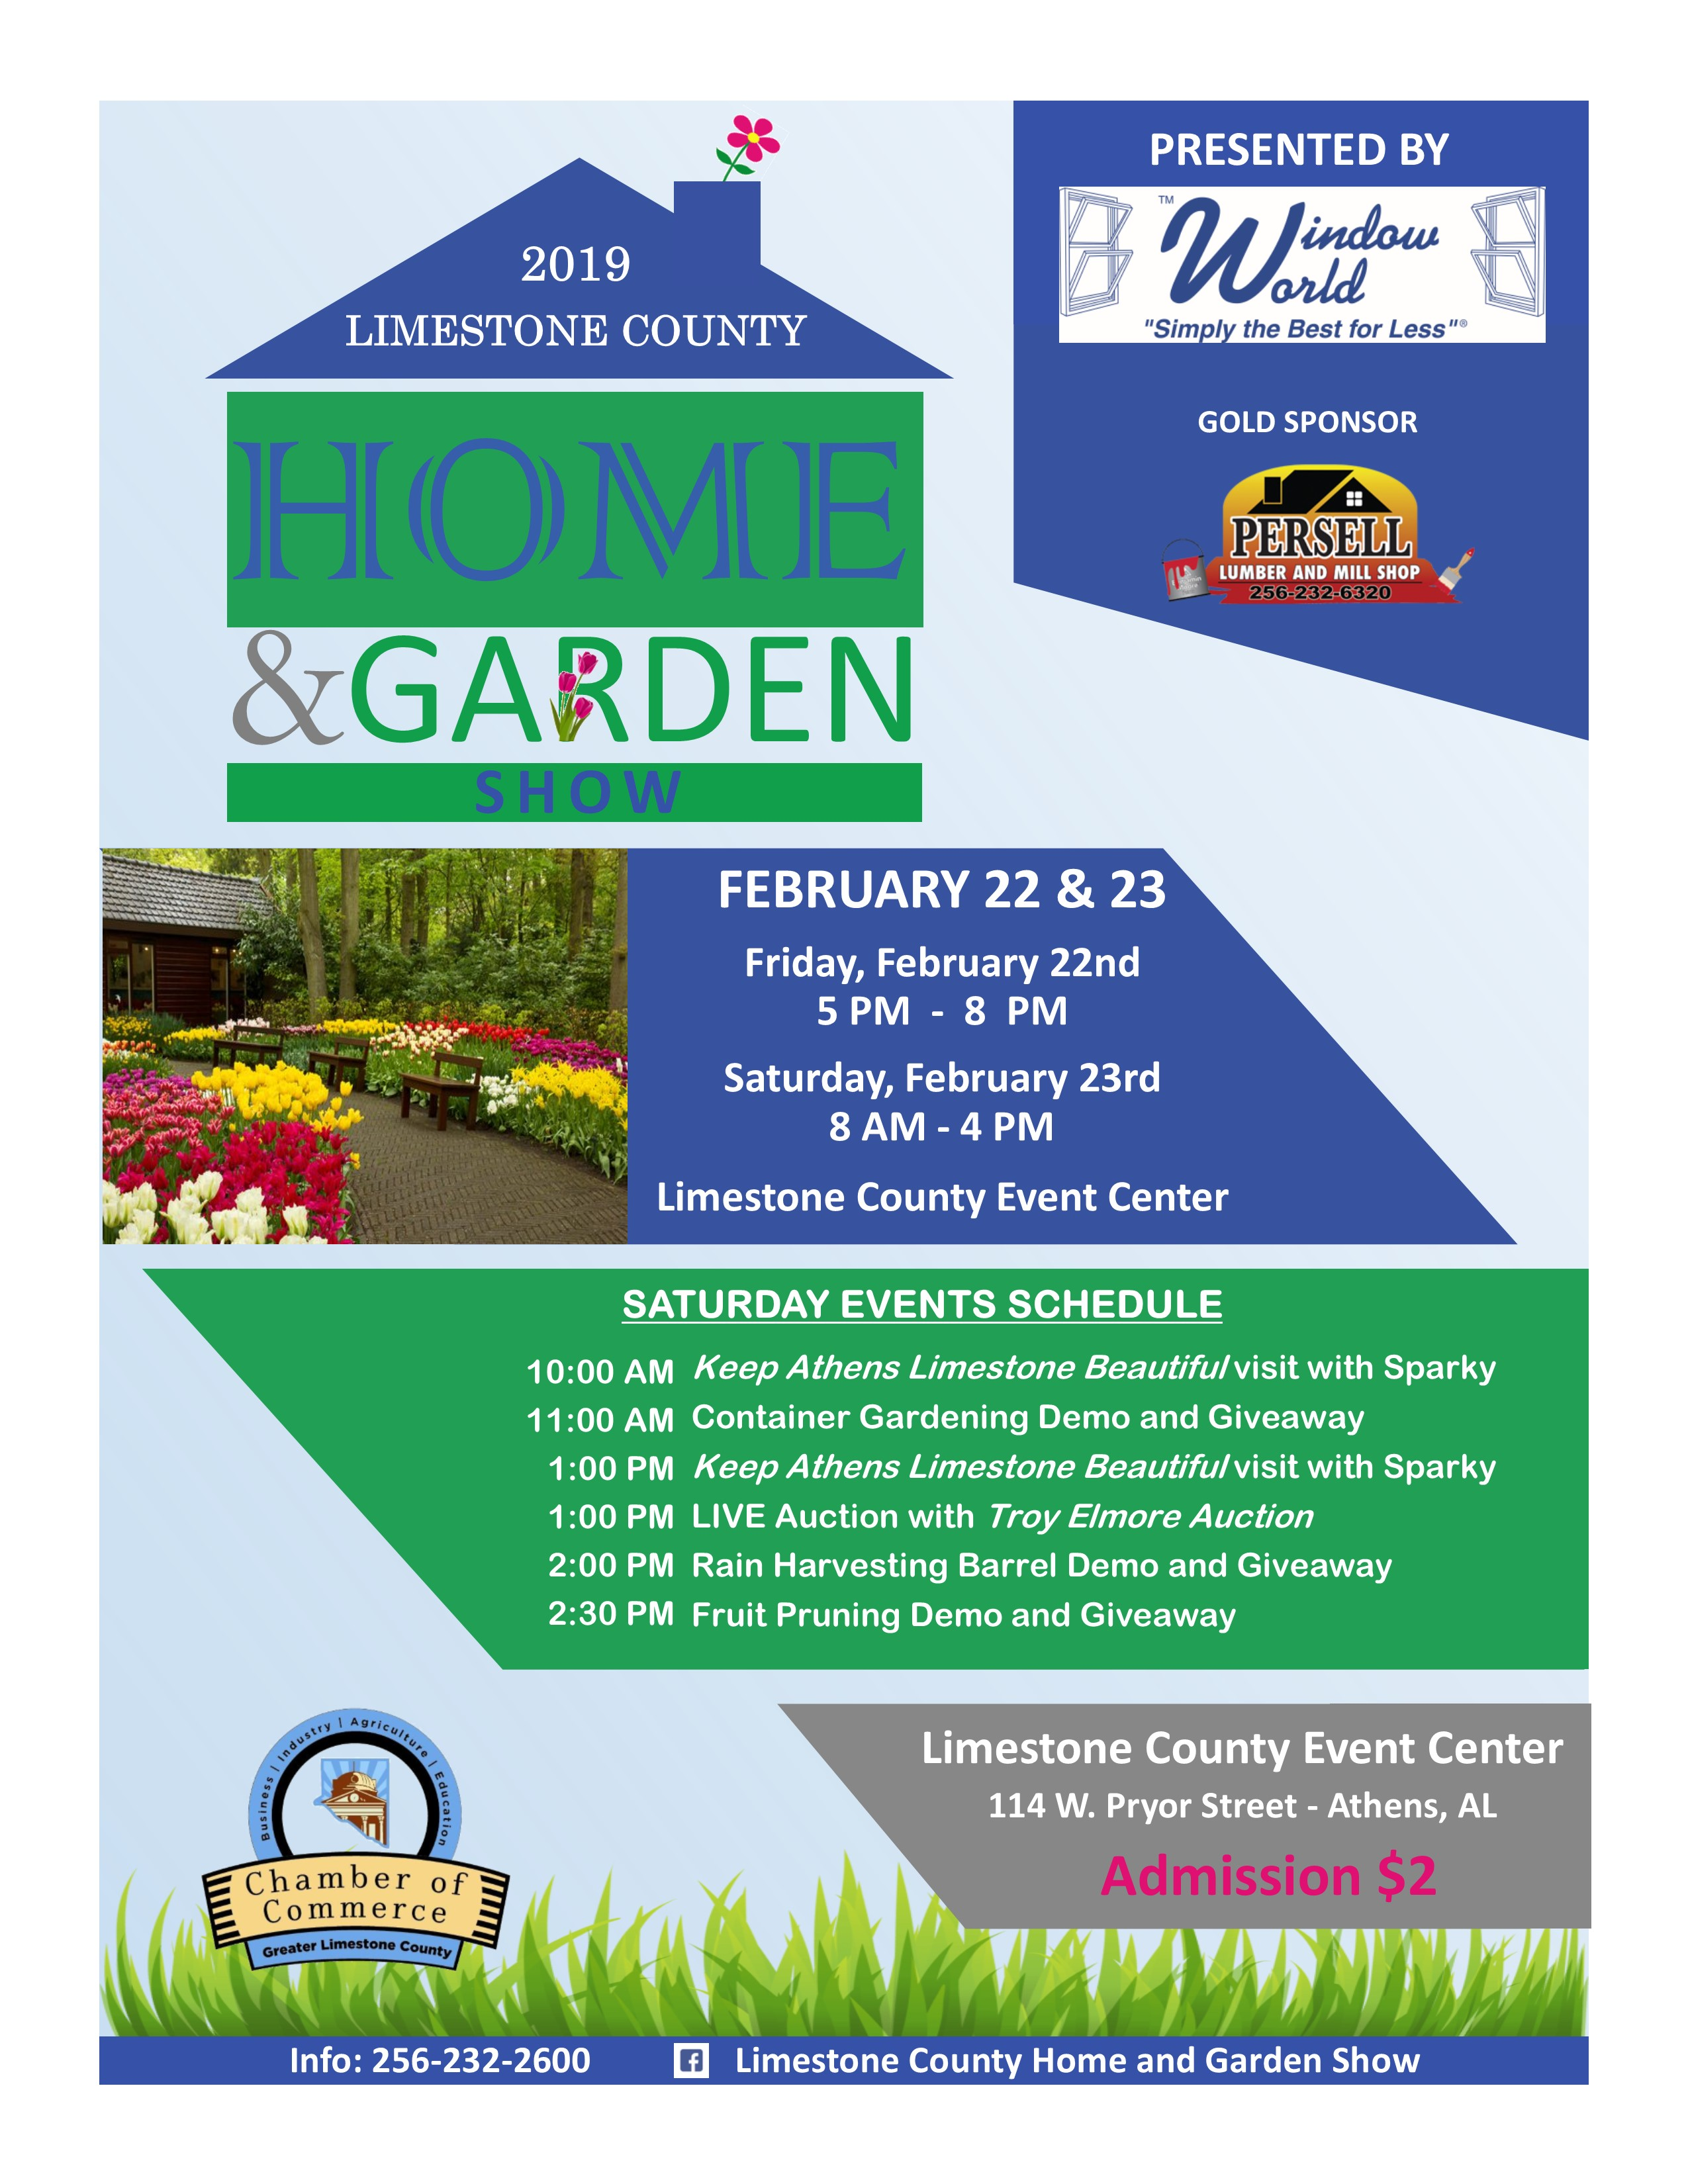 2019 Limestone County Home and Garden Show